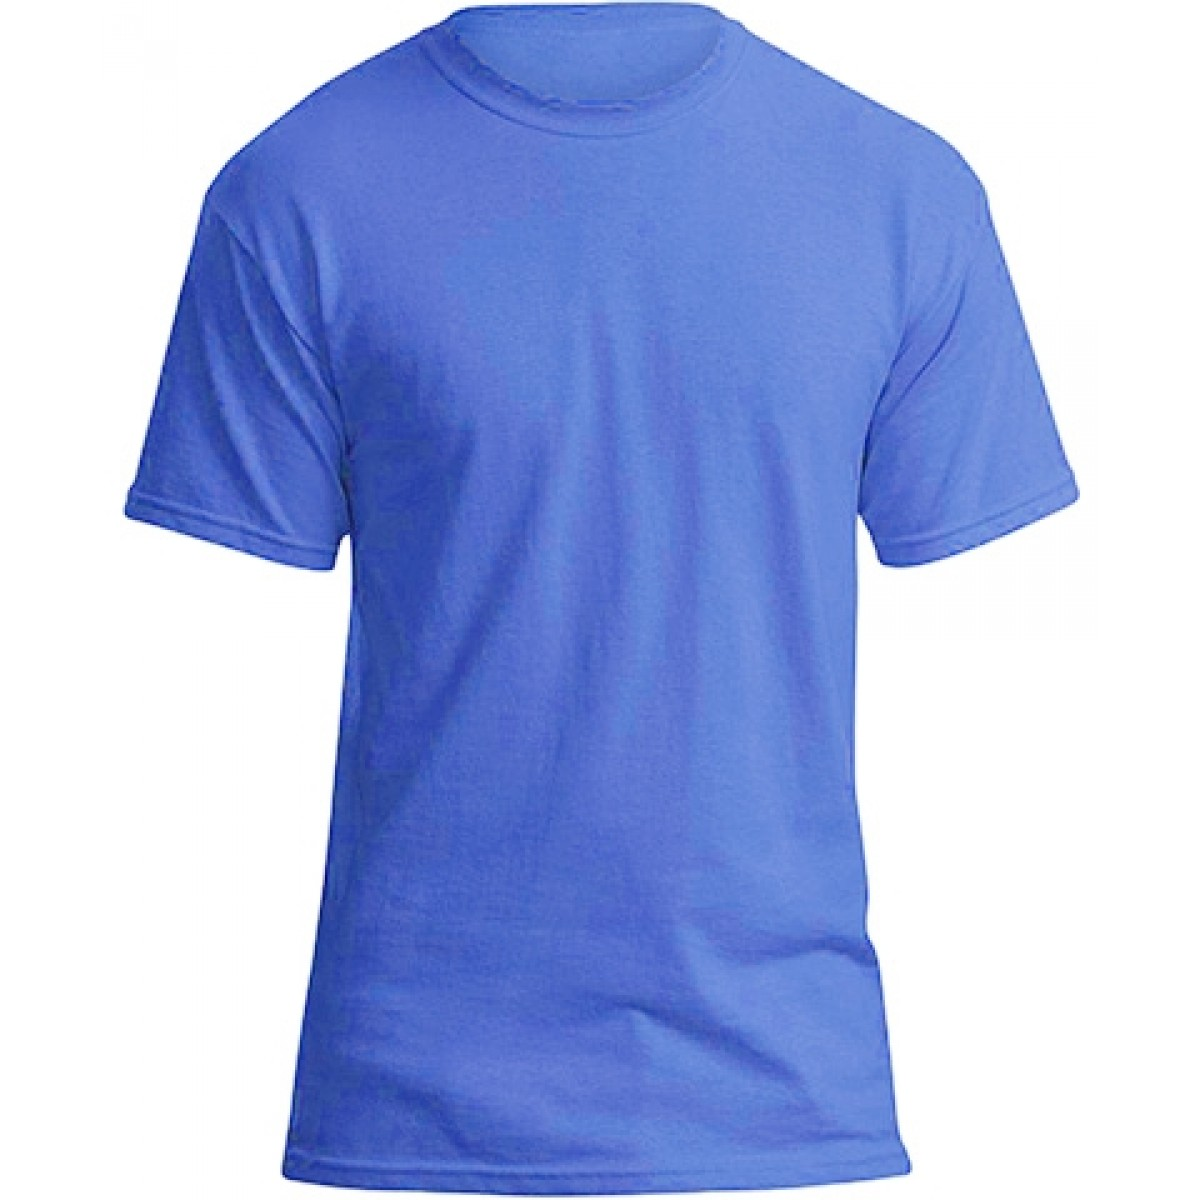 Soft 100% Cotton T-Shirt-Heather Blue-YL